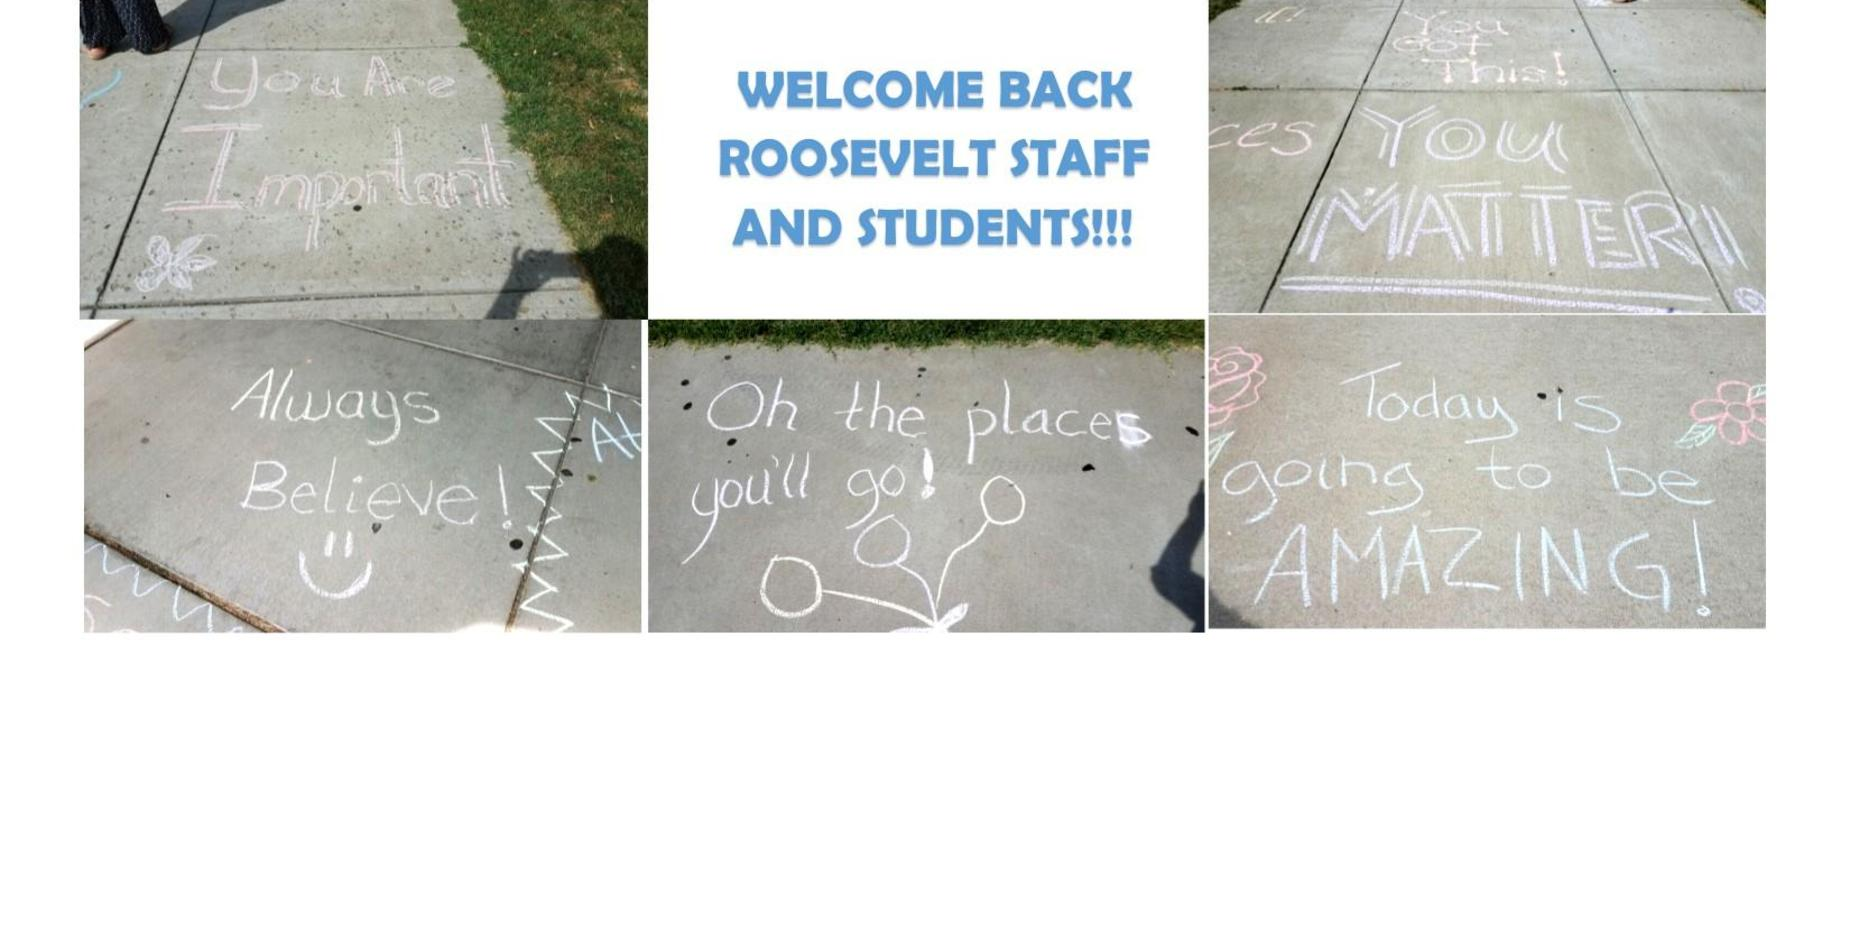 Welcome back roosevelt staff and students.  There are five messages written on the sidewalk from teachers.  They say always believe, you are important, you matter, today is going to be amazing, and the places you will go!